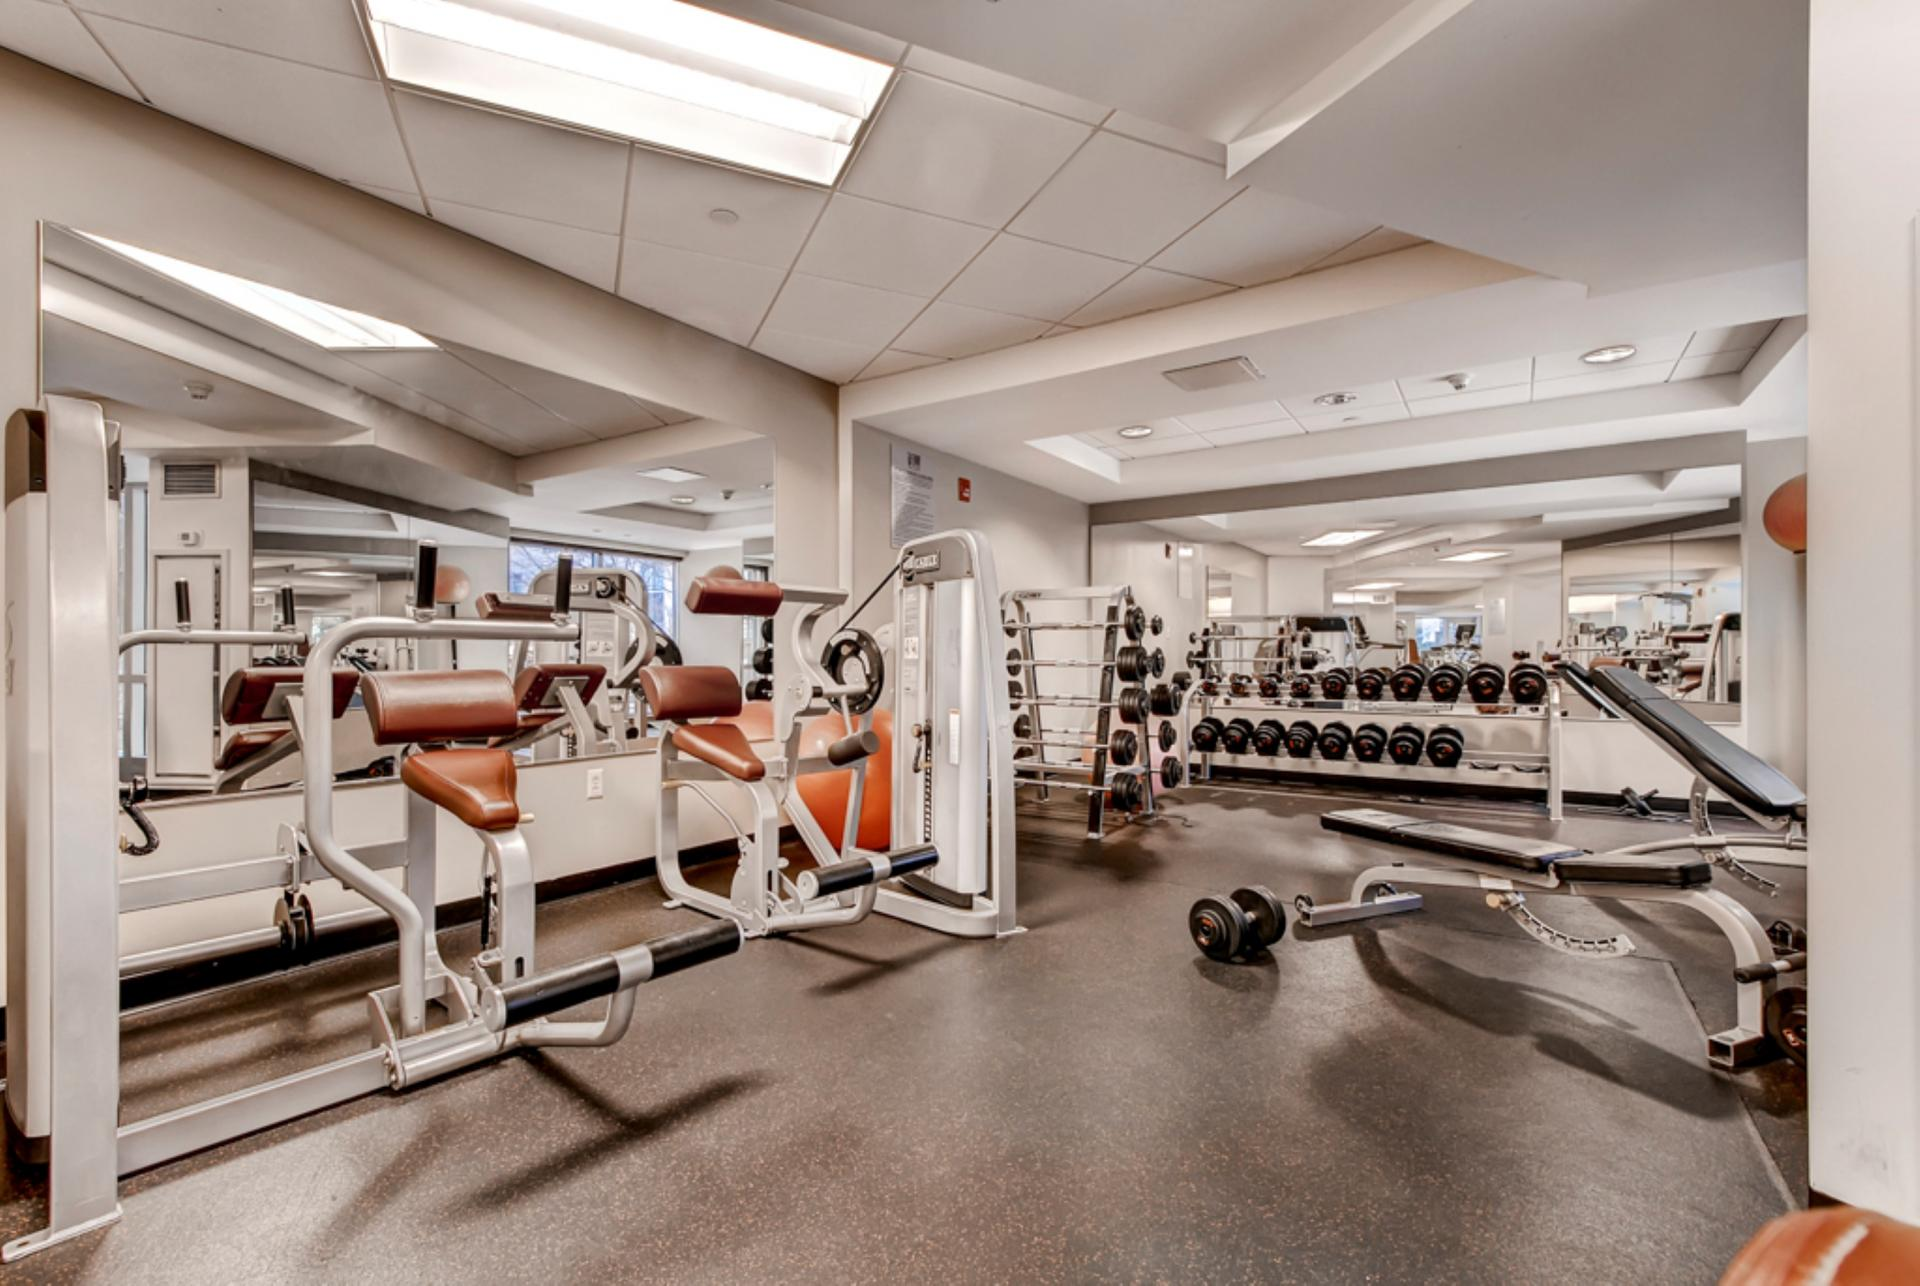 Gym at Fenway Triangle Trilogy Apartments, Brookline, Boston